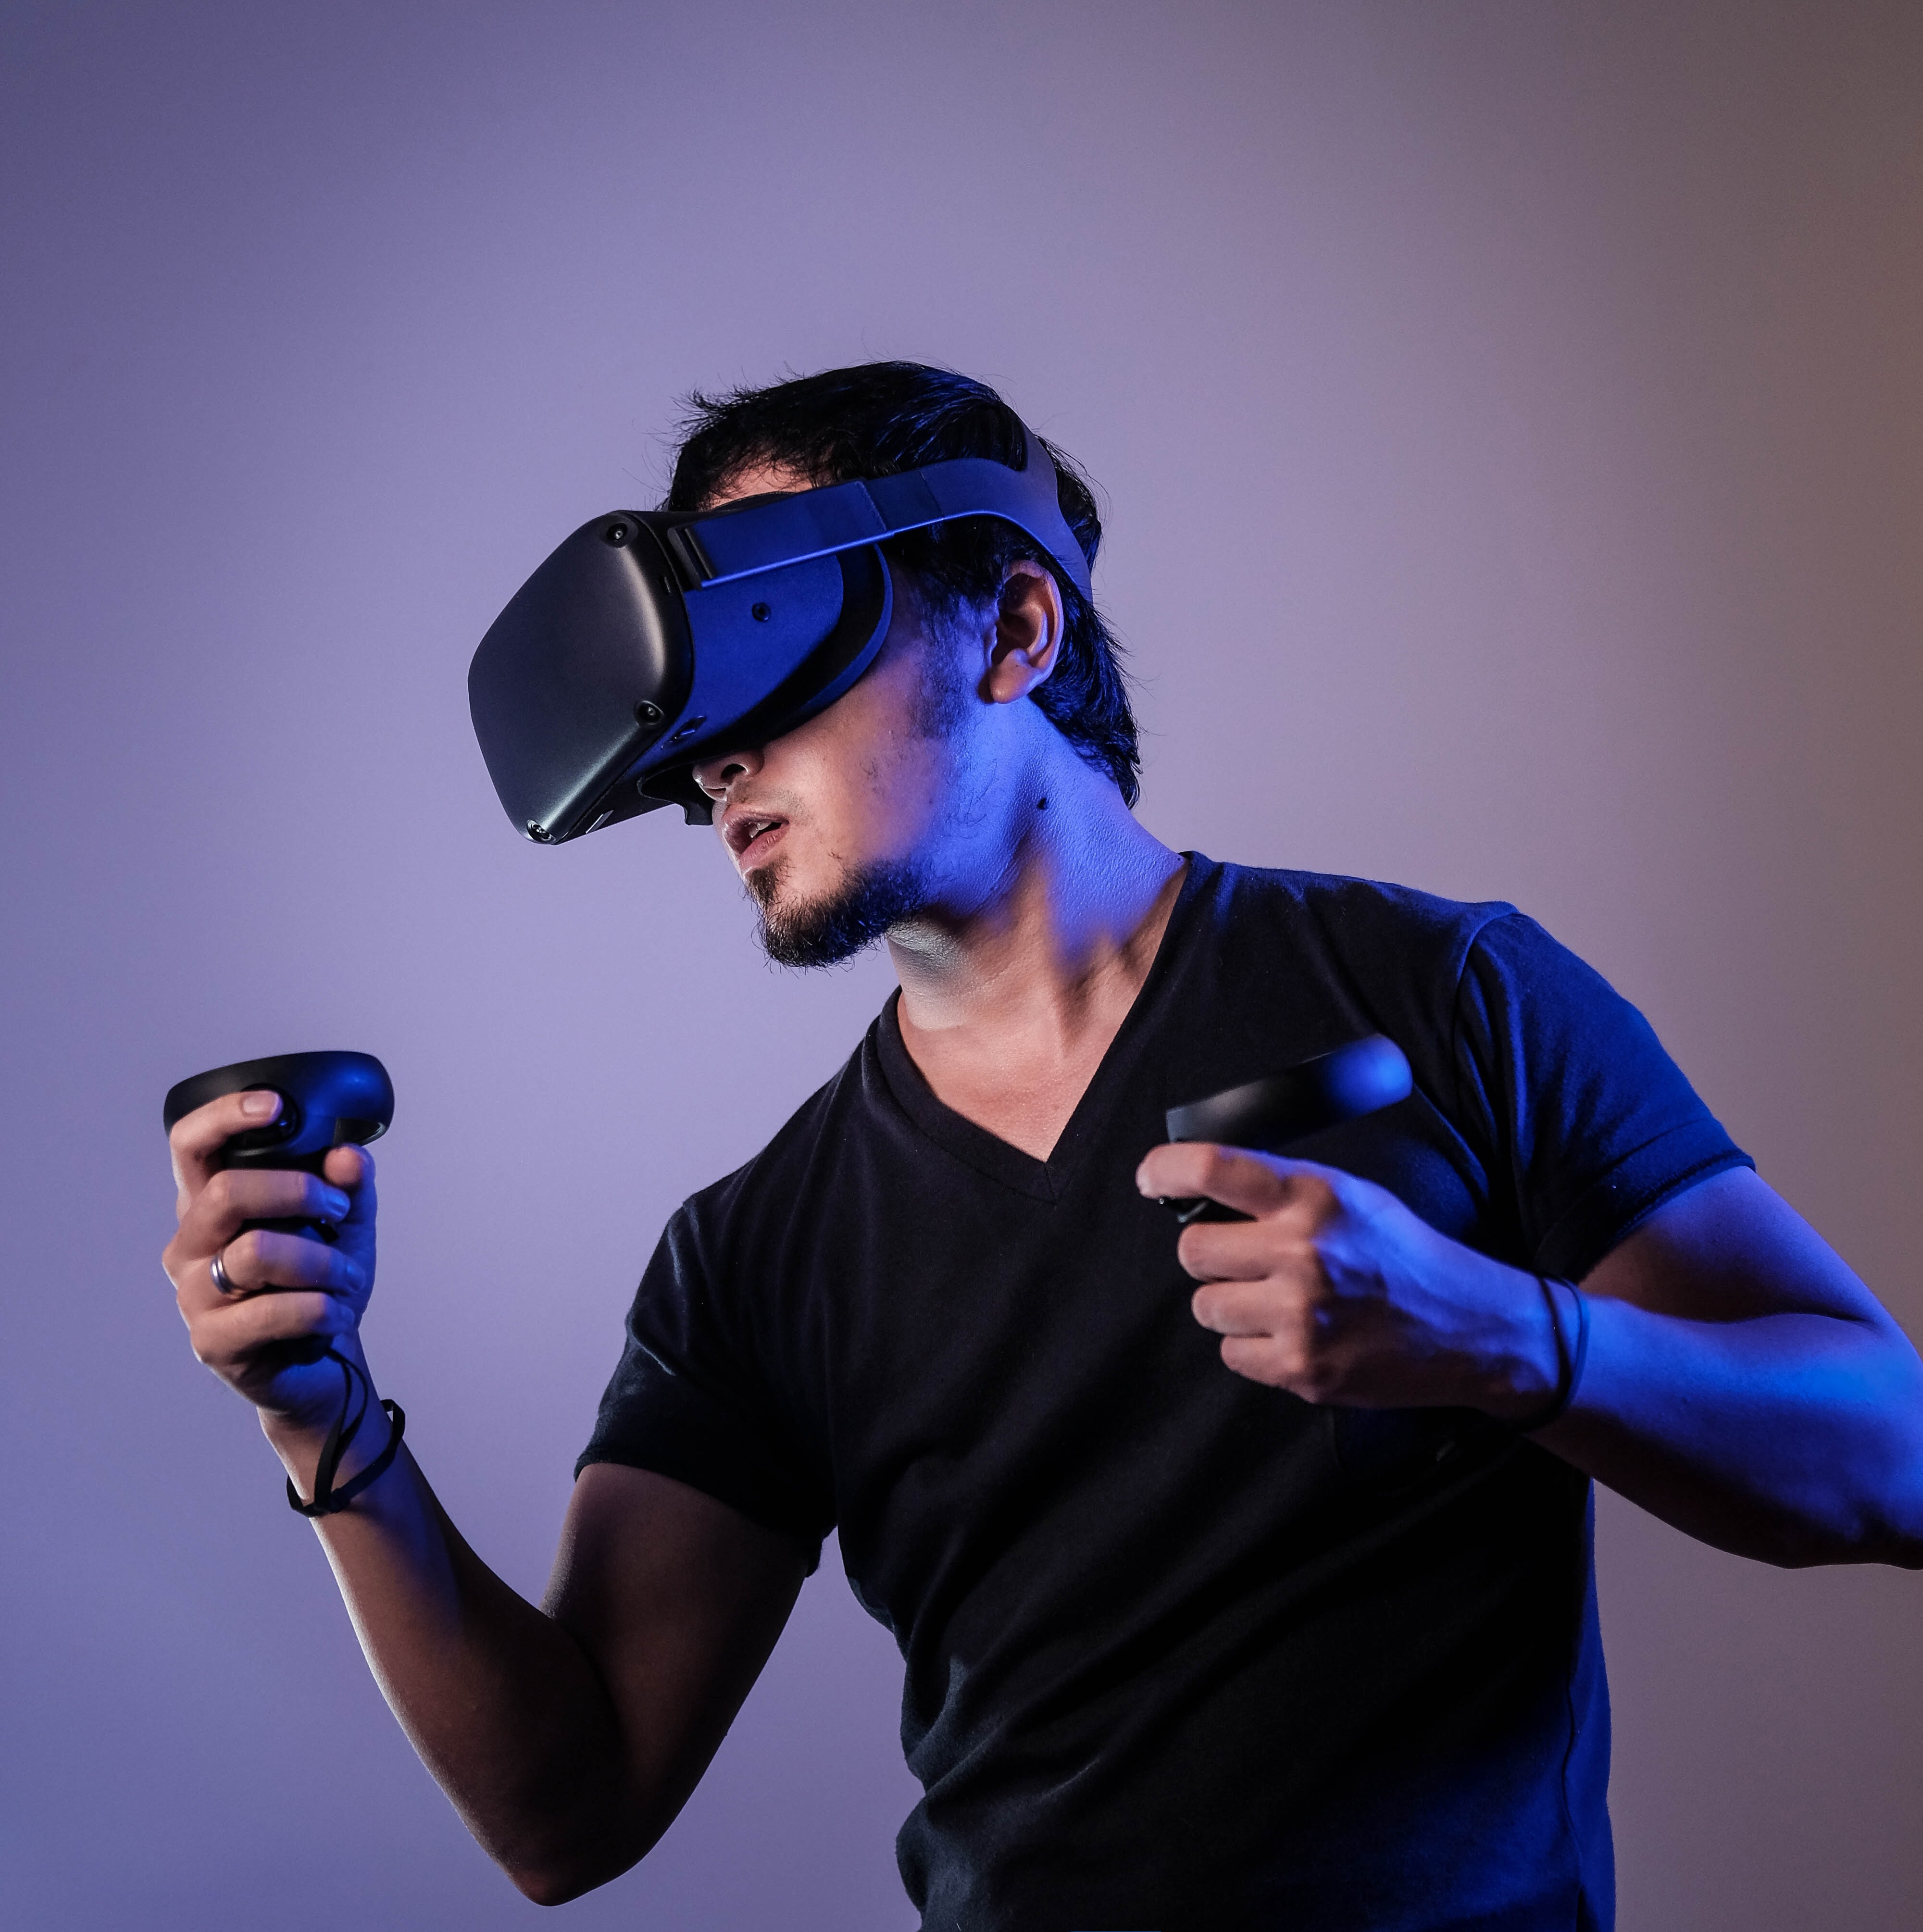 Man wearing a VR headset and holding controllers